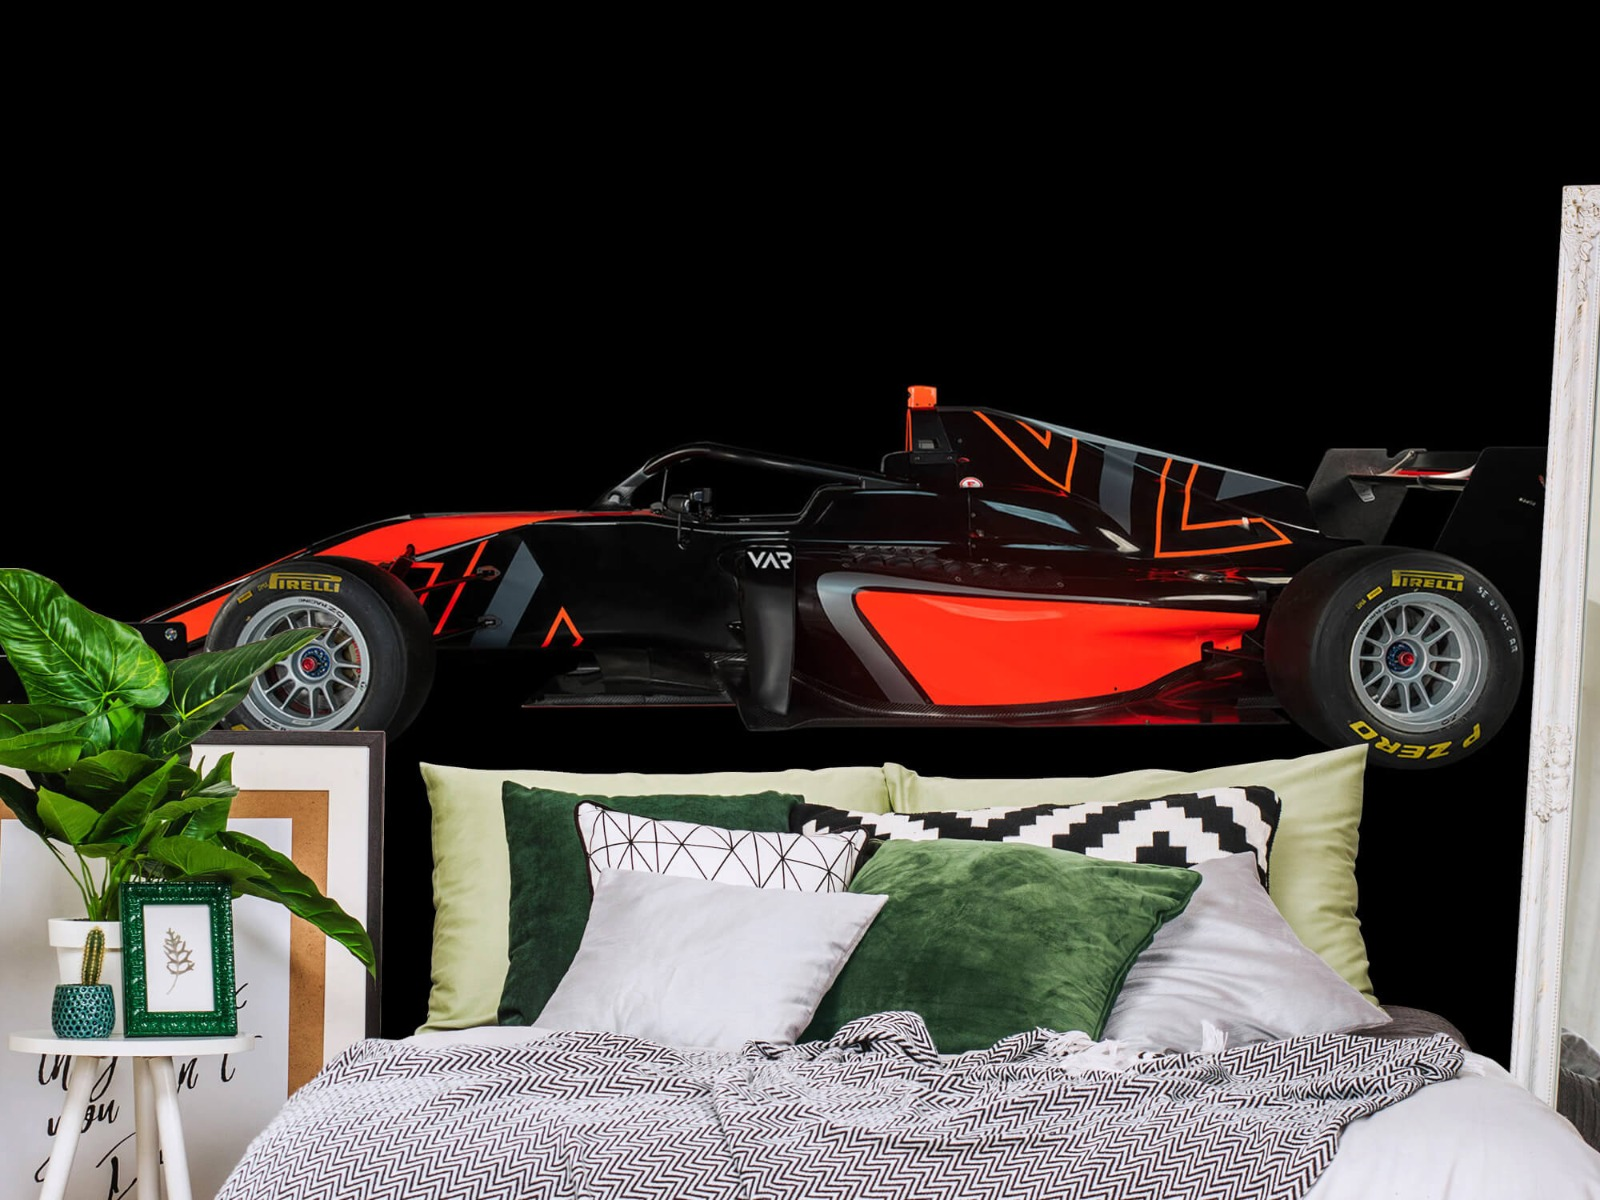 Sportauto's - Formule 3 - Lower side view - dark - Tienerkamer 13